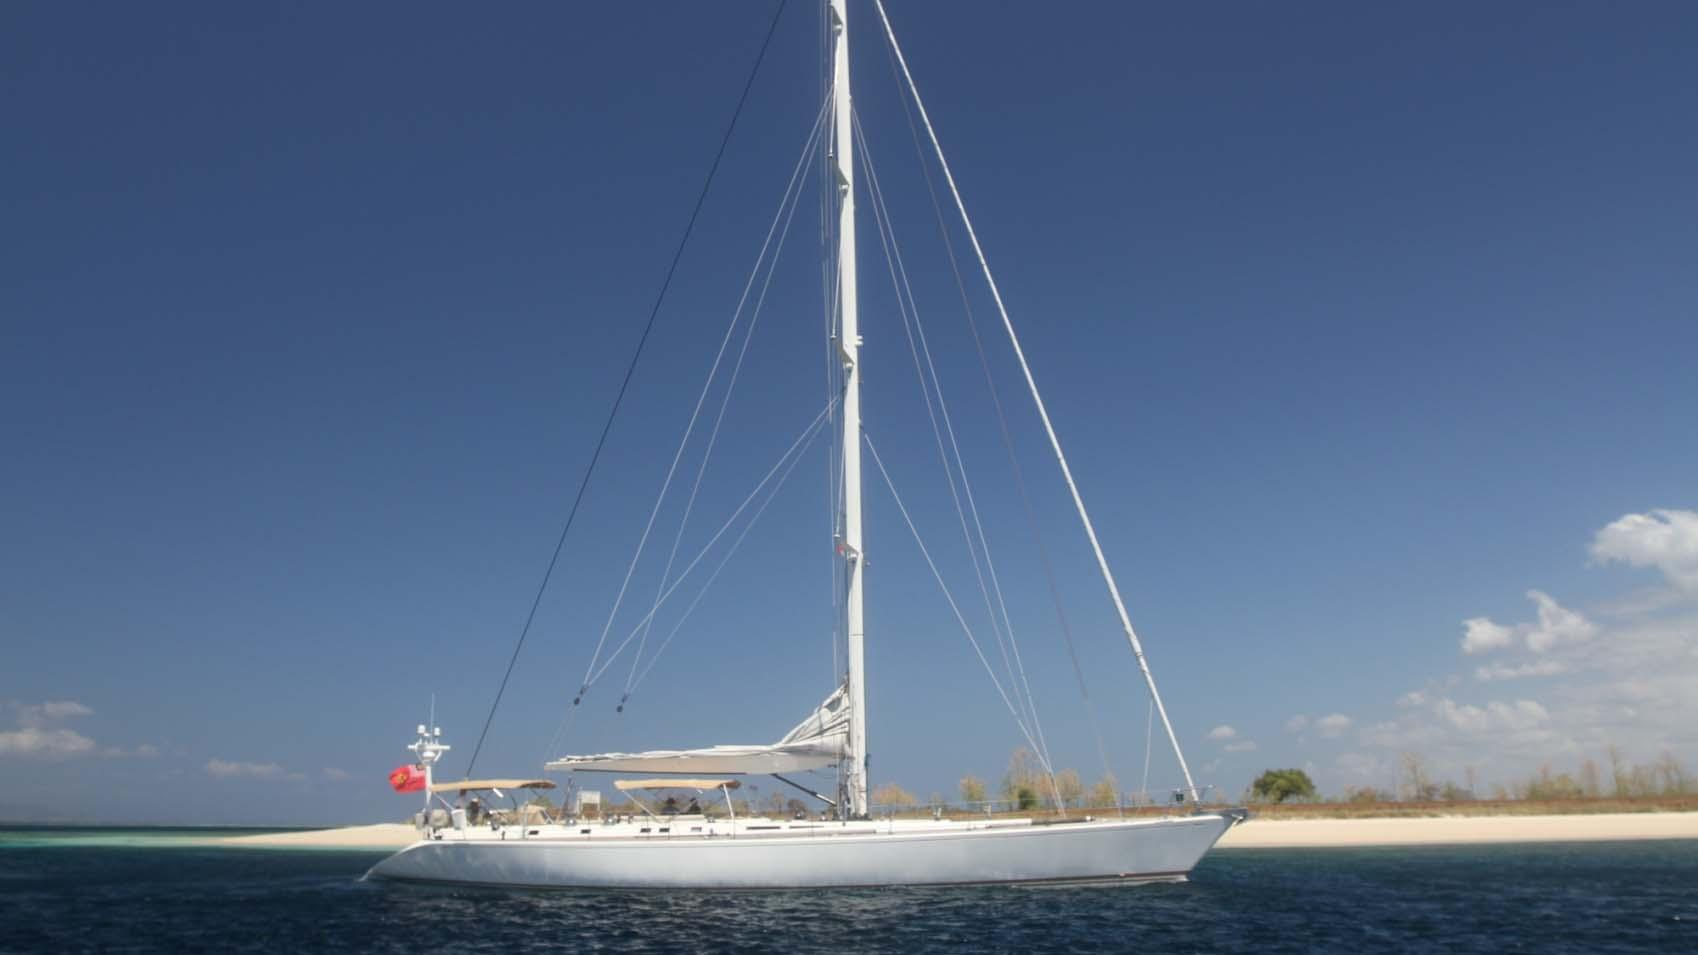 ASPIRATION sailing yacht profile